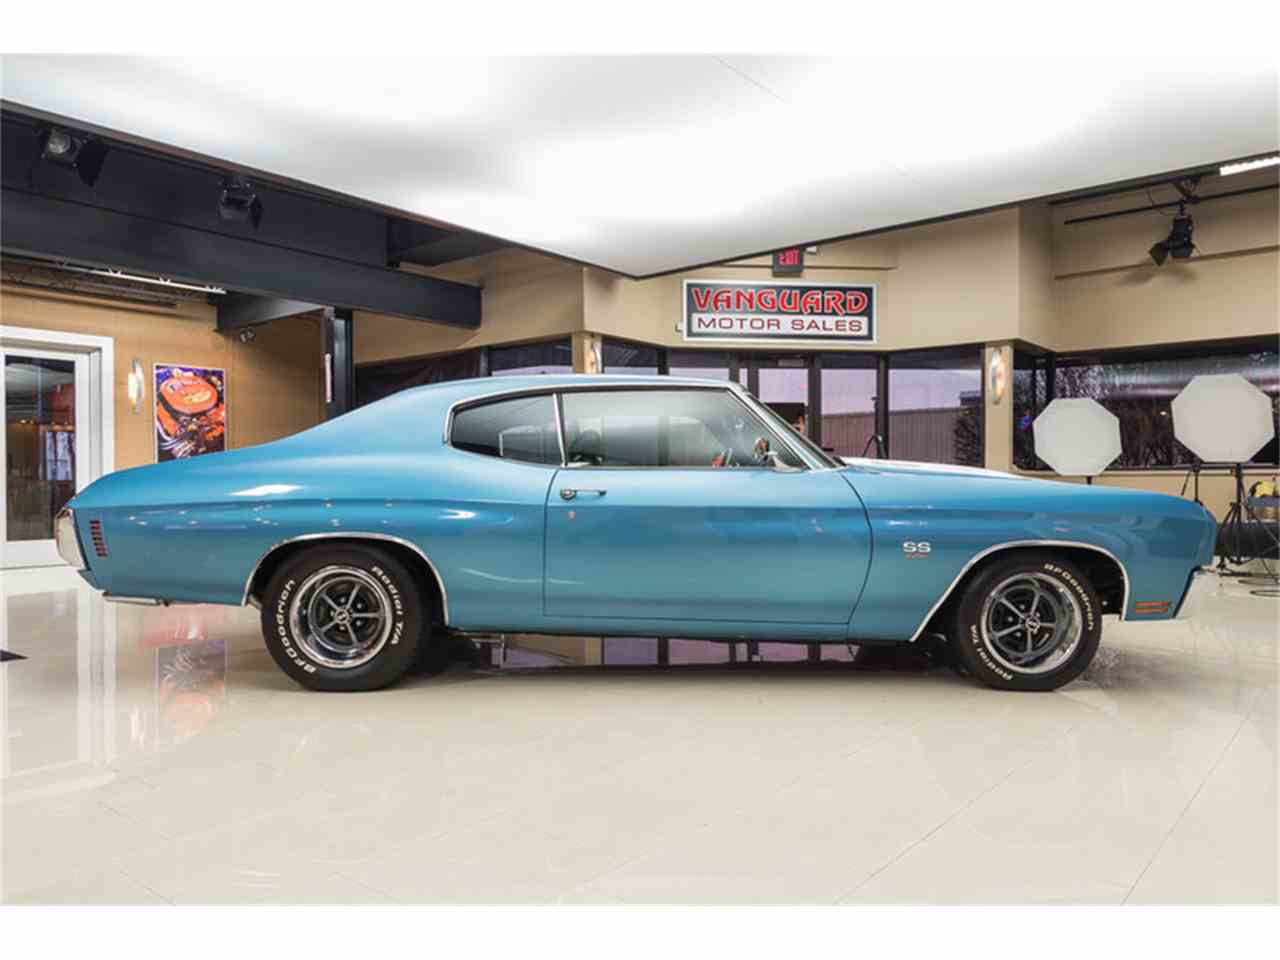 Large Picture of 1970 Chevrolet Chevelle located in Michigan - $64,900.00 Offered by Vanguard Motor Sales - M8F5